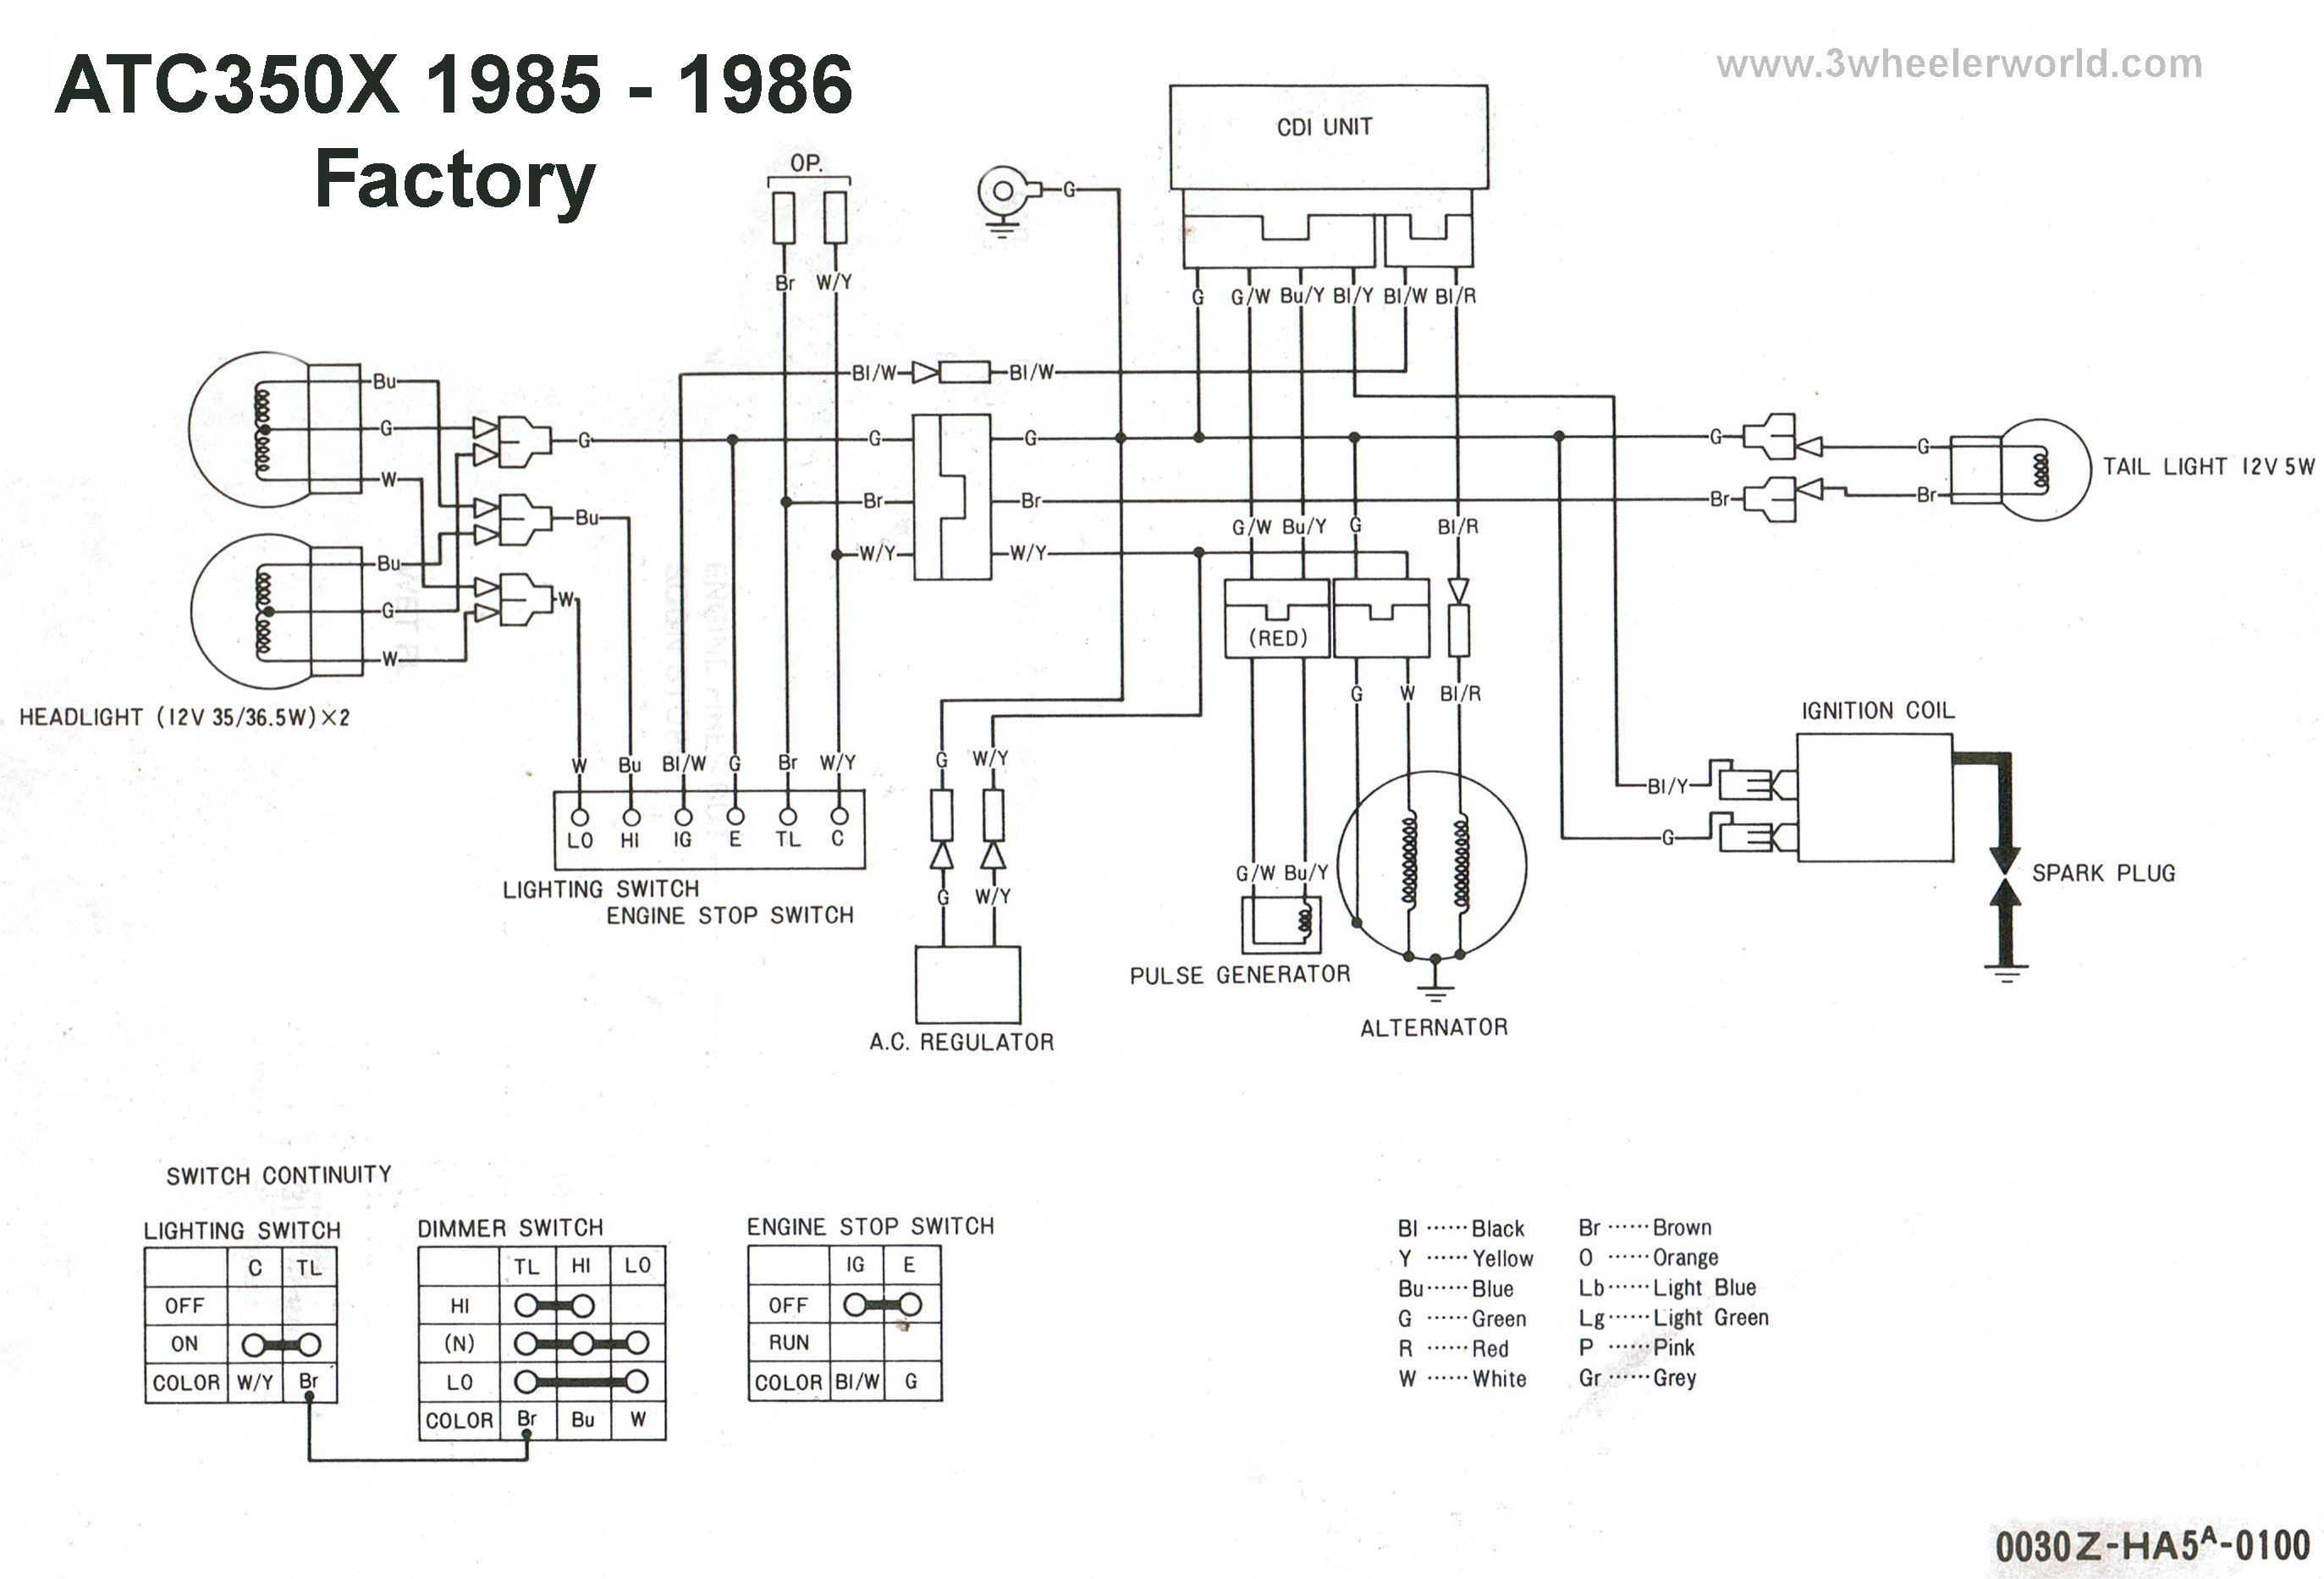 about honda trx200ex msd ignition system and schematics diagram further 1986 honda trx 125 parts as well diagram of honda atv parts 1986 honda atv